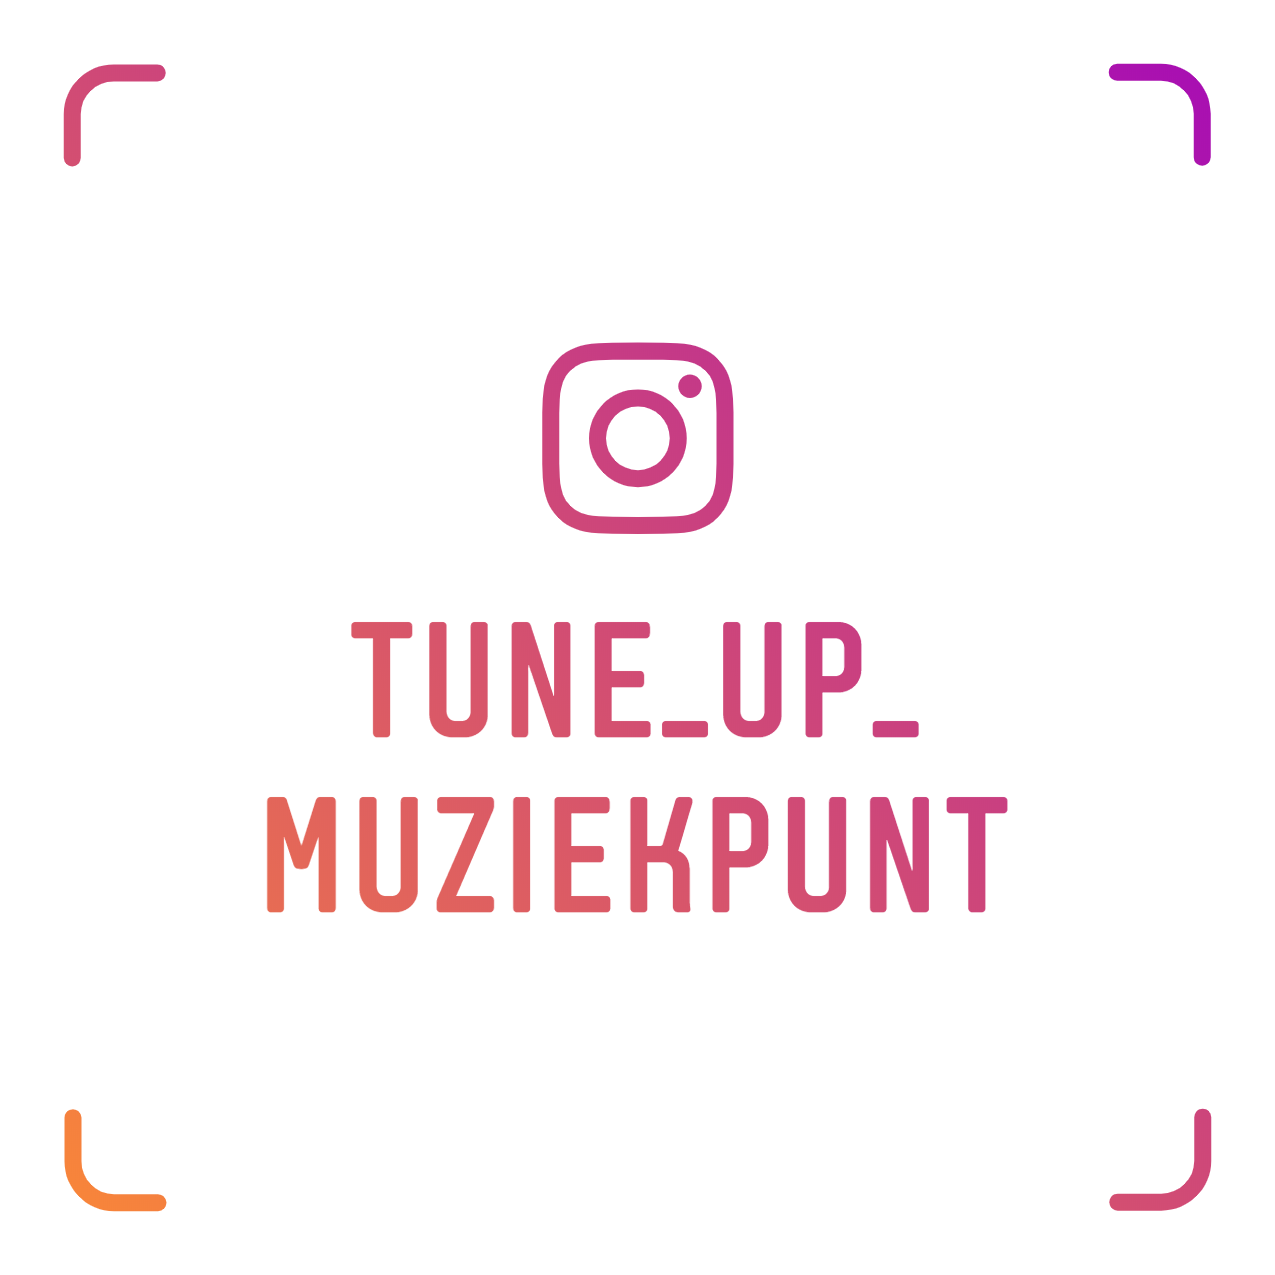 Tune Up Muziekpunt | Instagram